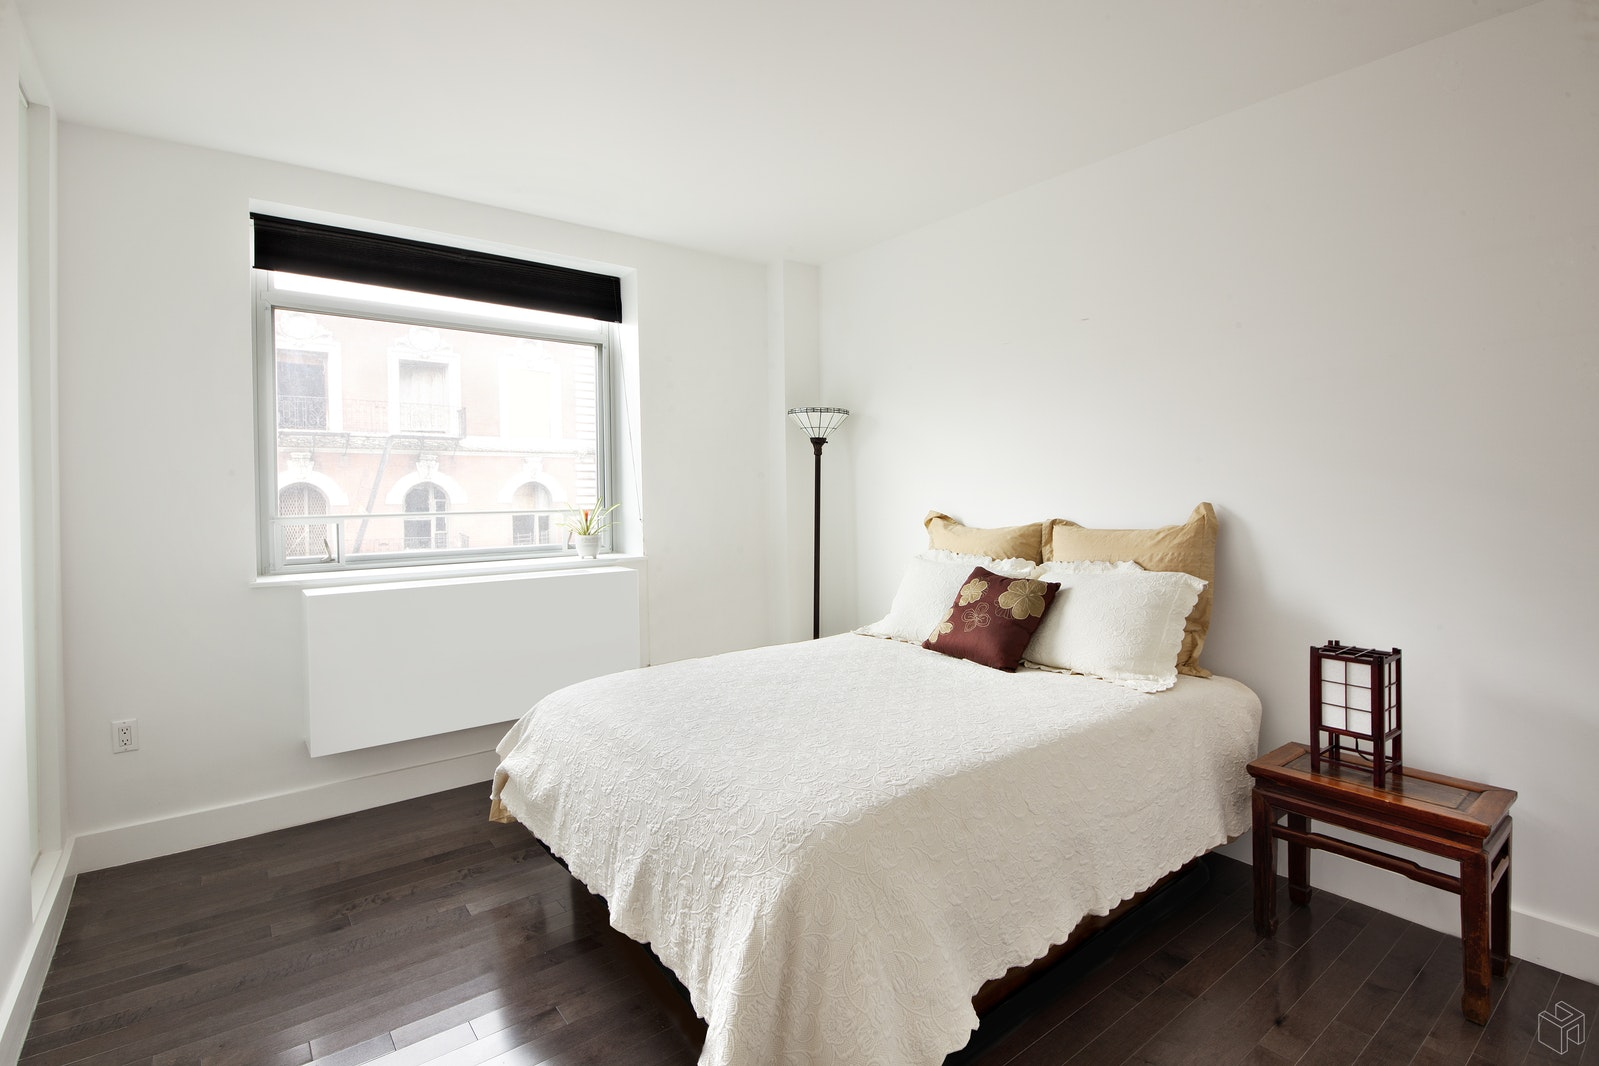 88 Morningside Avenue 6d, Upper Manhattan, NYC, 10027, $720,000, Property For Sale, Halstead Real Estate, Photo 2